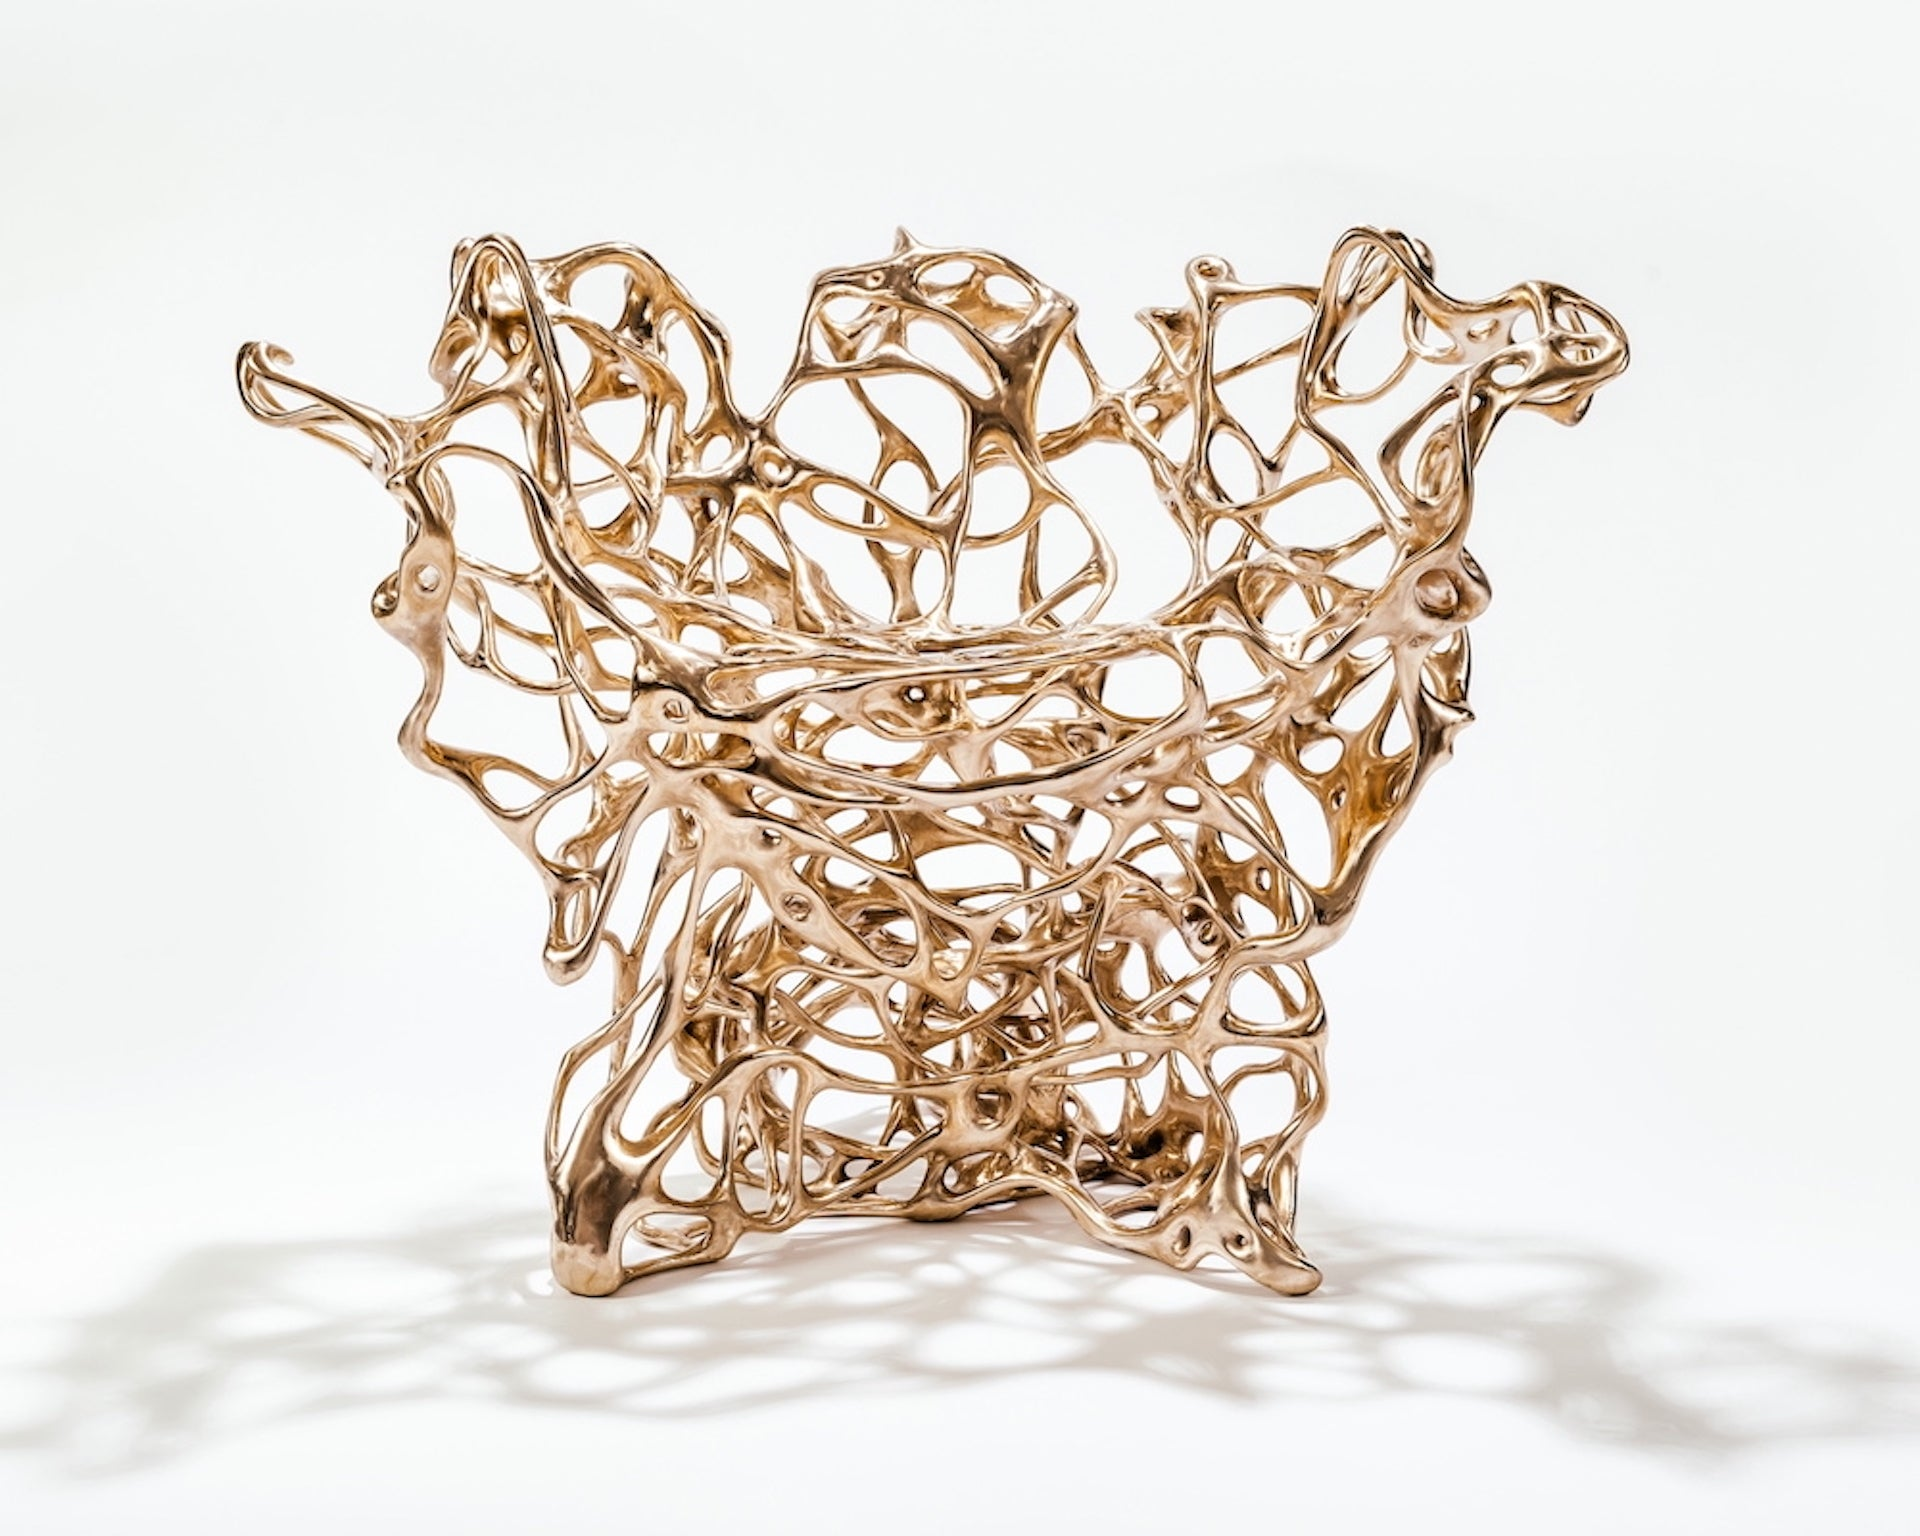 Bronze Growth Chair by Mathias Bengtsson, 2012. Photo © Maurizio Camagna; Courtesy of the artist